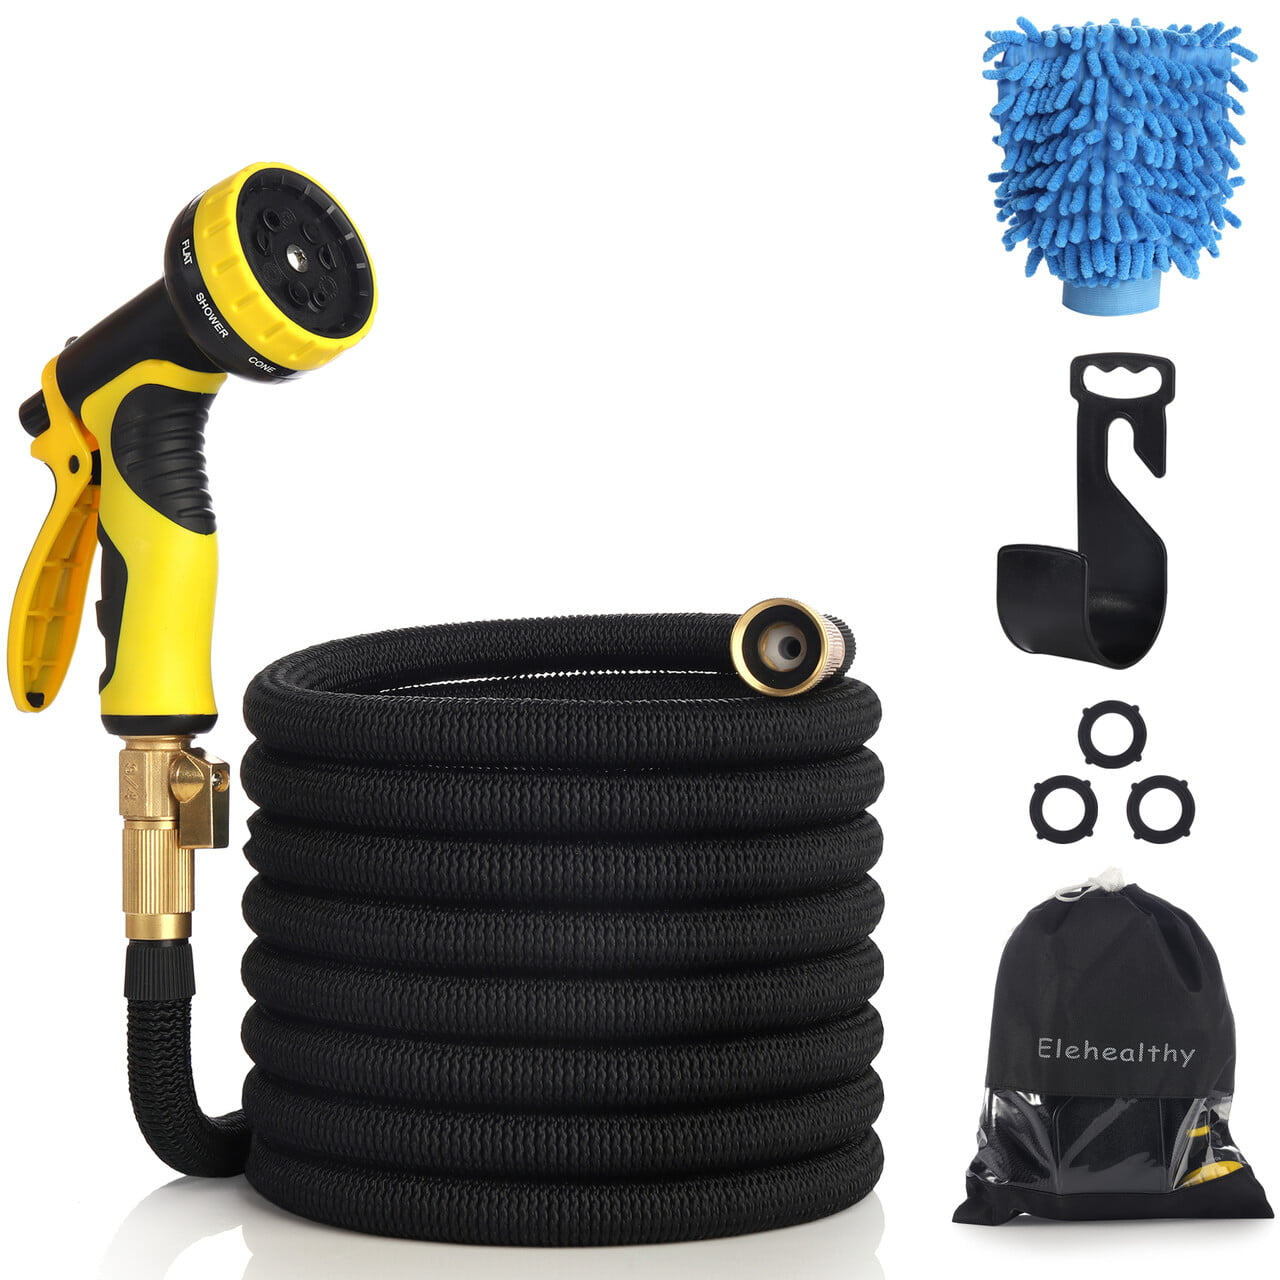 75//100 ft Expandable Garden Hose Flexible Expanding Water Hose with Spray Nozzle